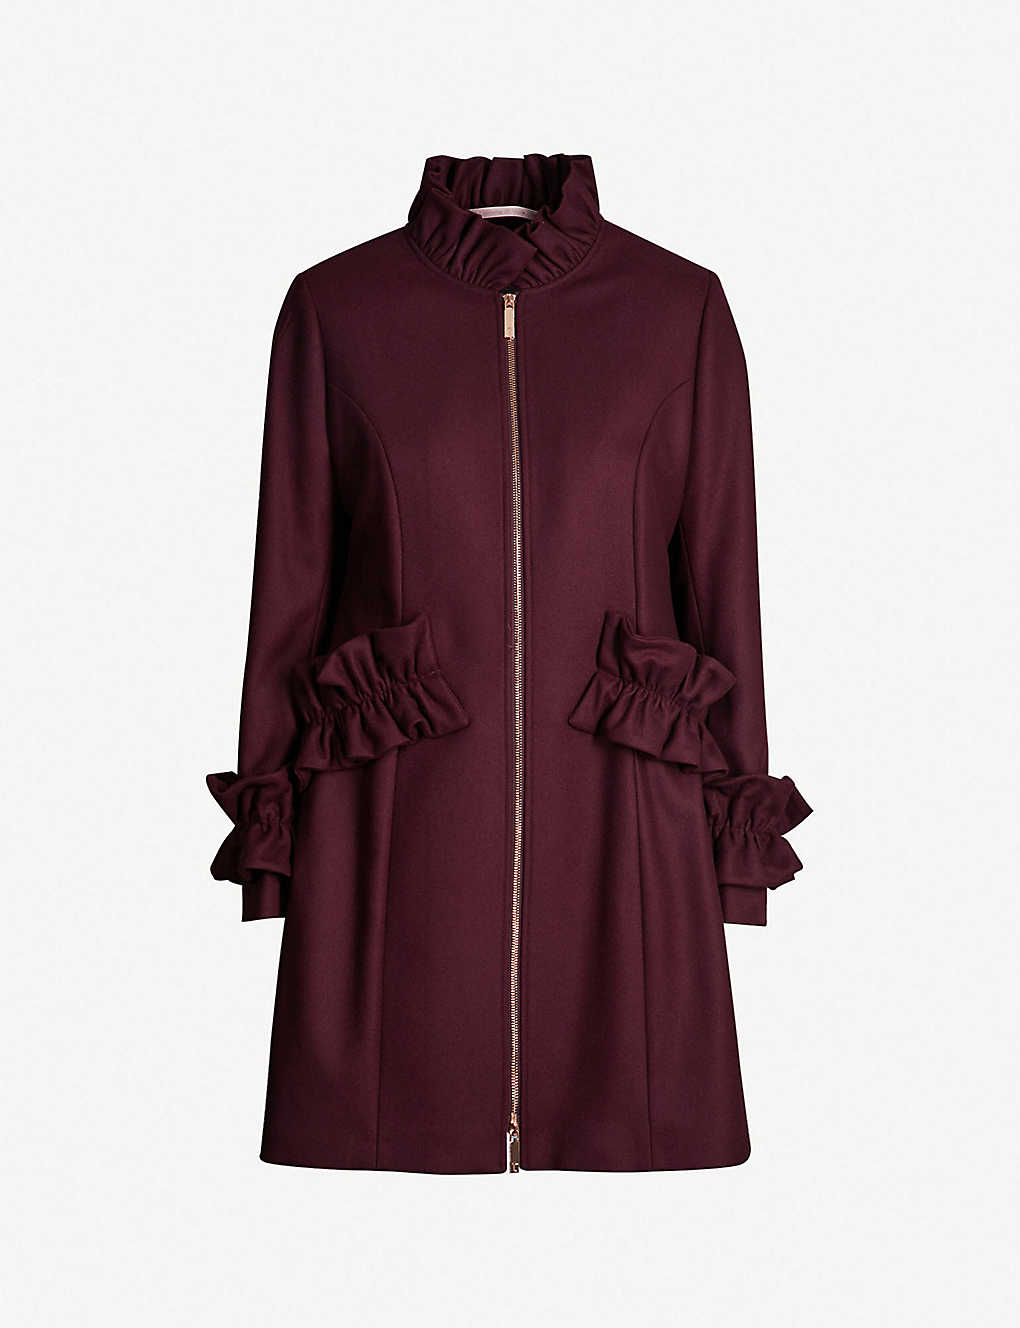 5bc2fca99 TED BAKER - Blaykly ruffle-trim wool-blend coat